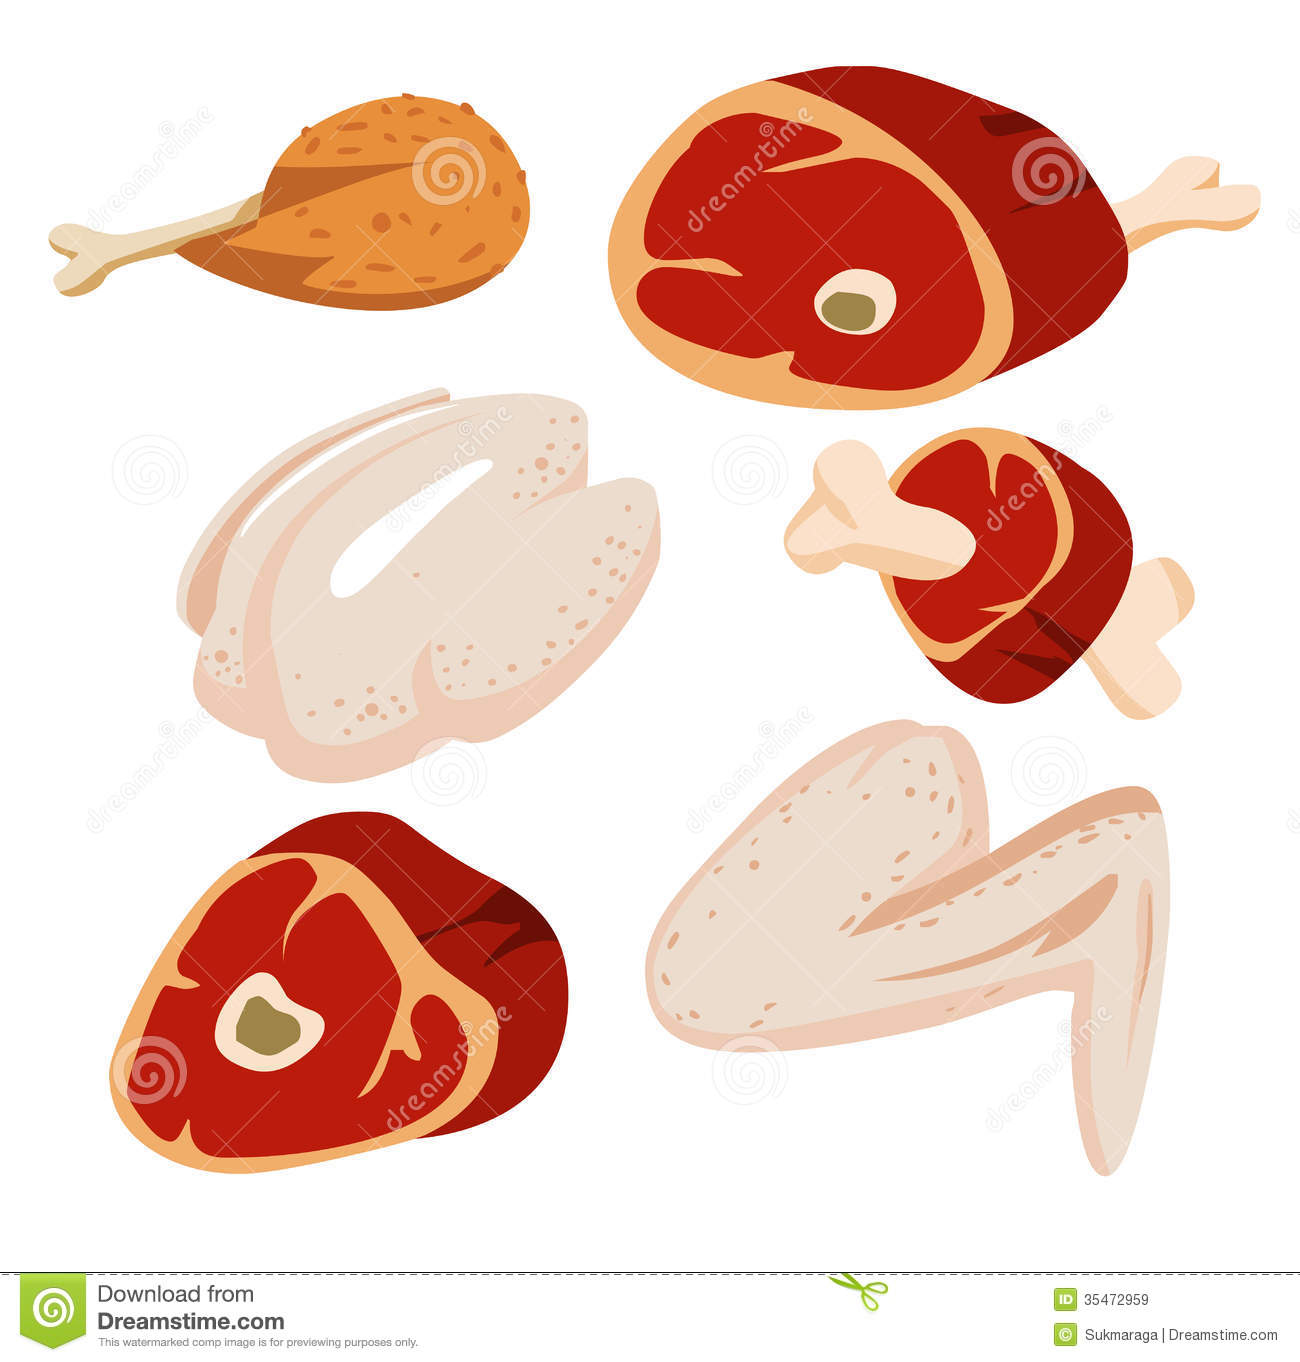 raw meat clipart - photo #23